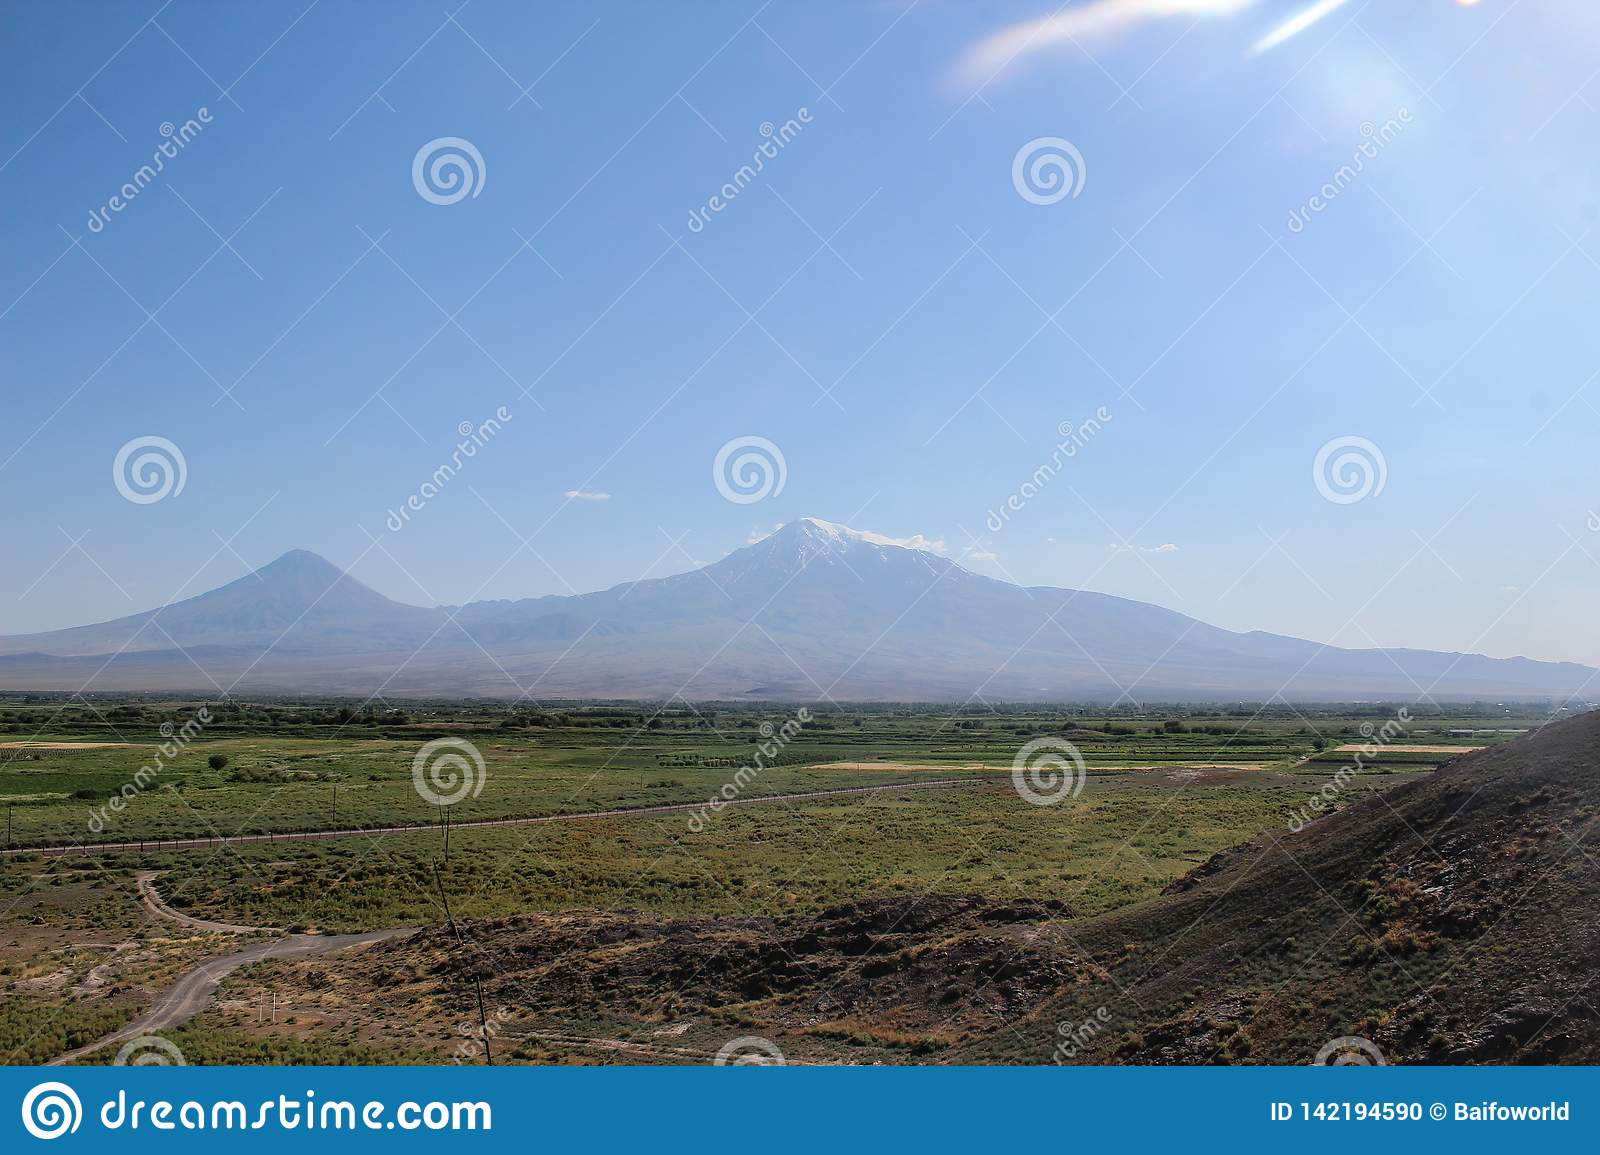 Mount Ararat from distance with green fields